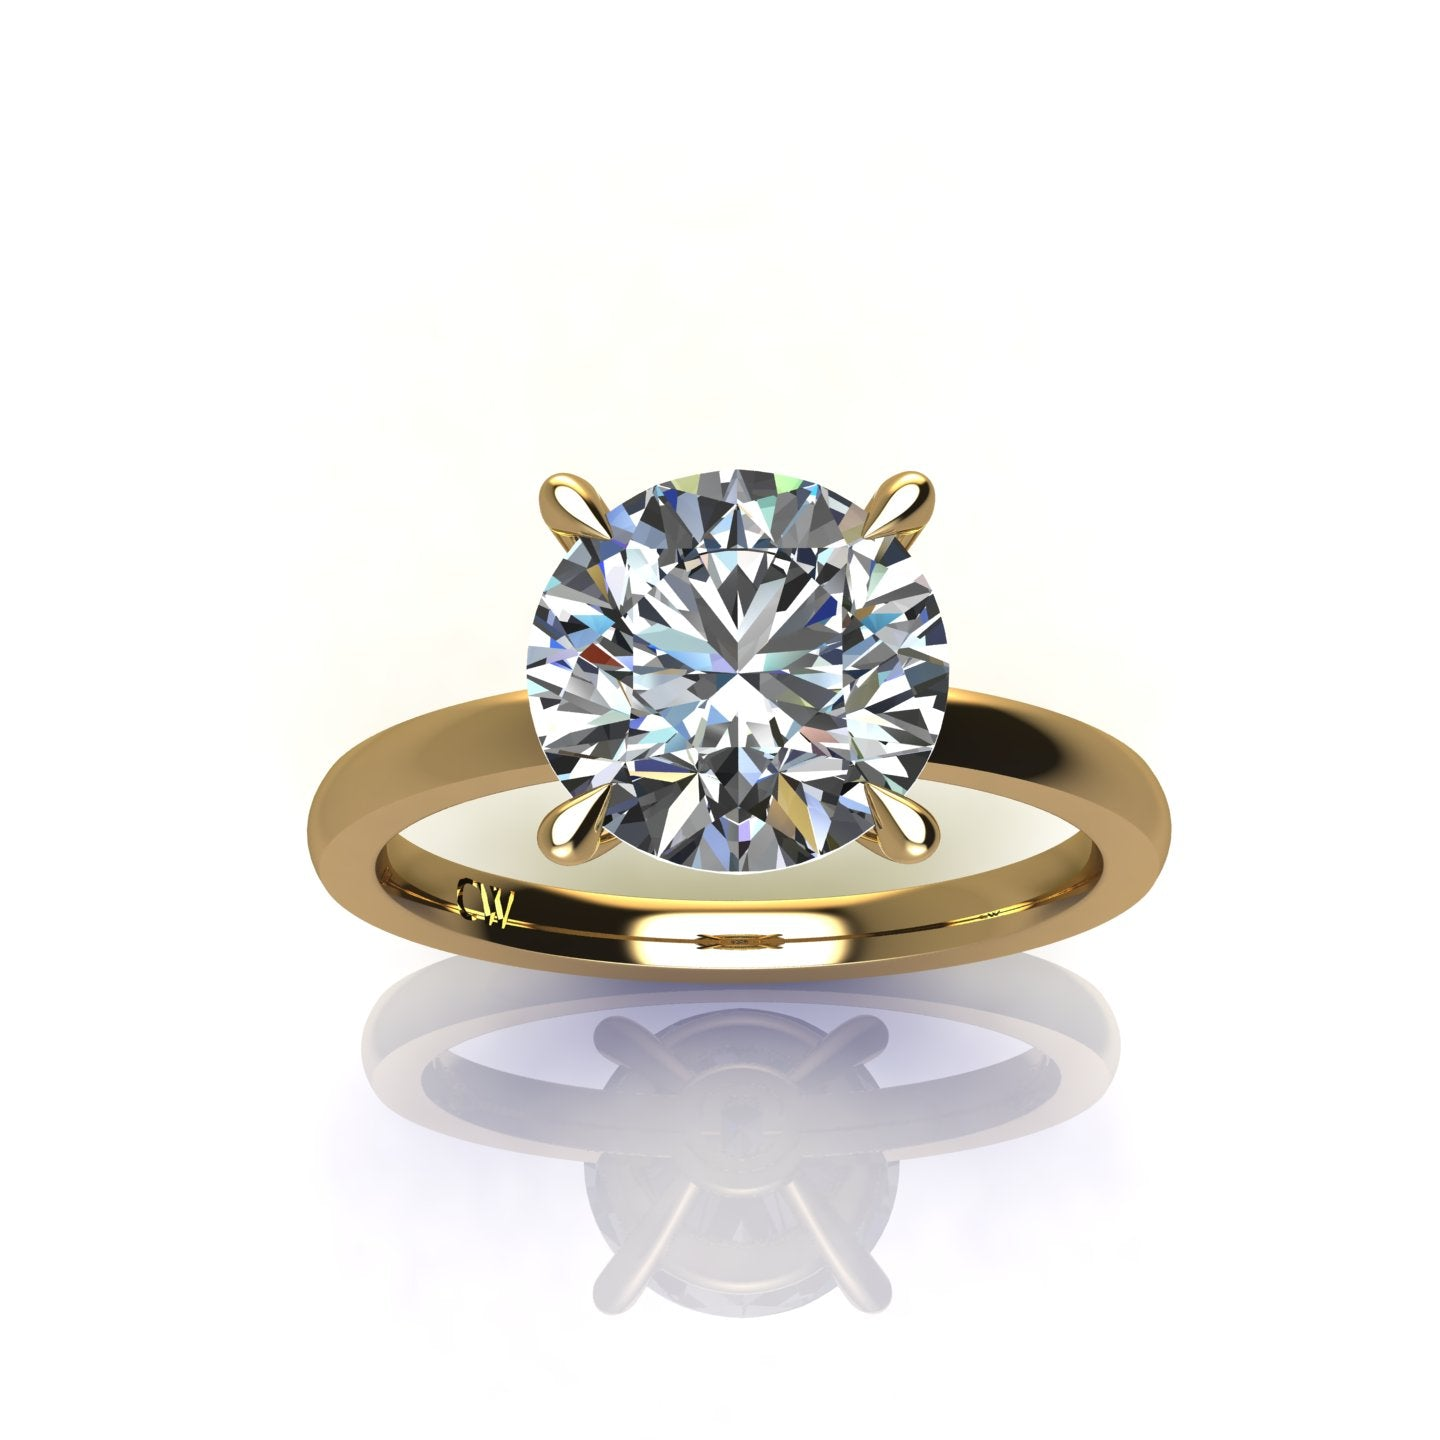 SIGNATURE SOLITAIRE ENGAGEMENT RING